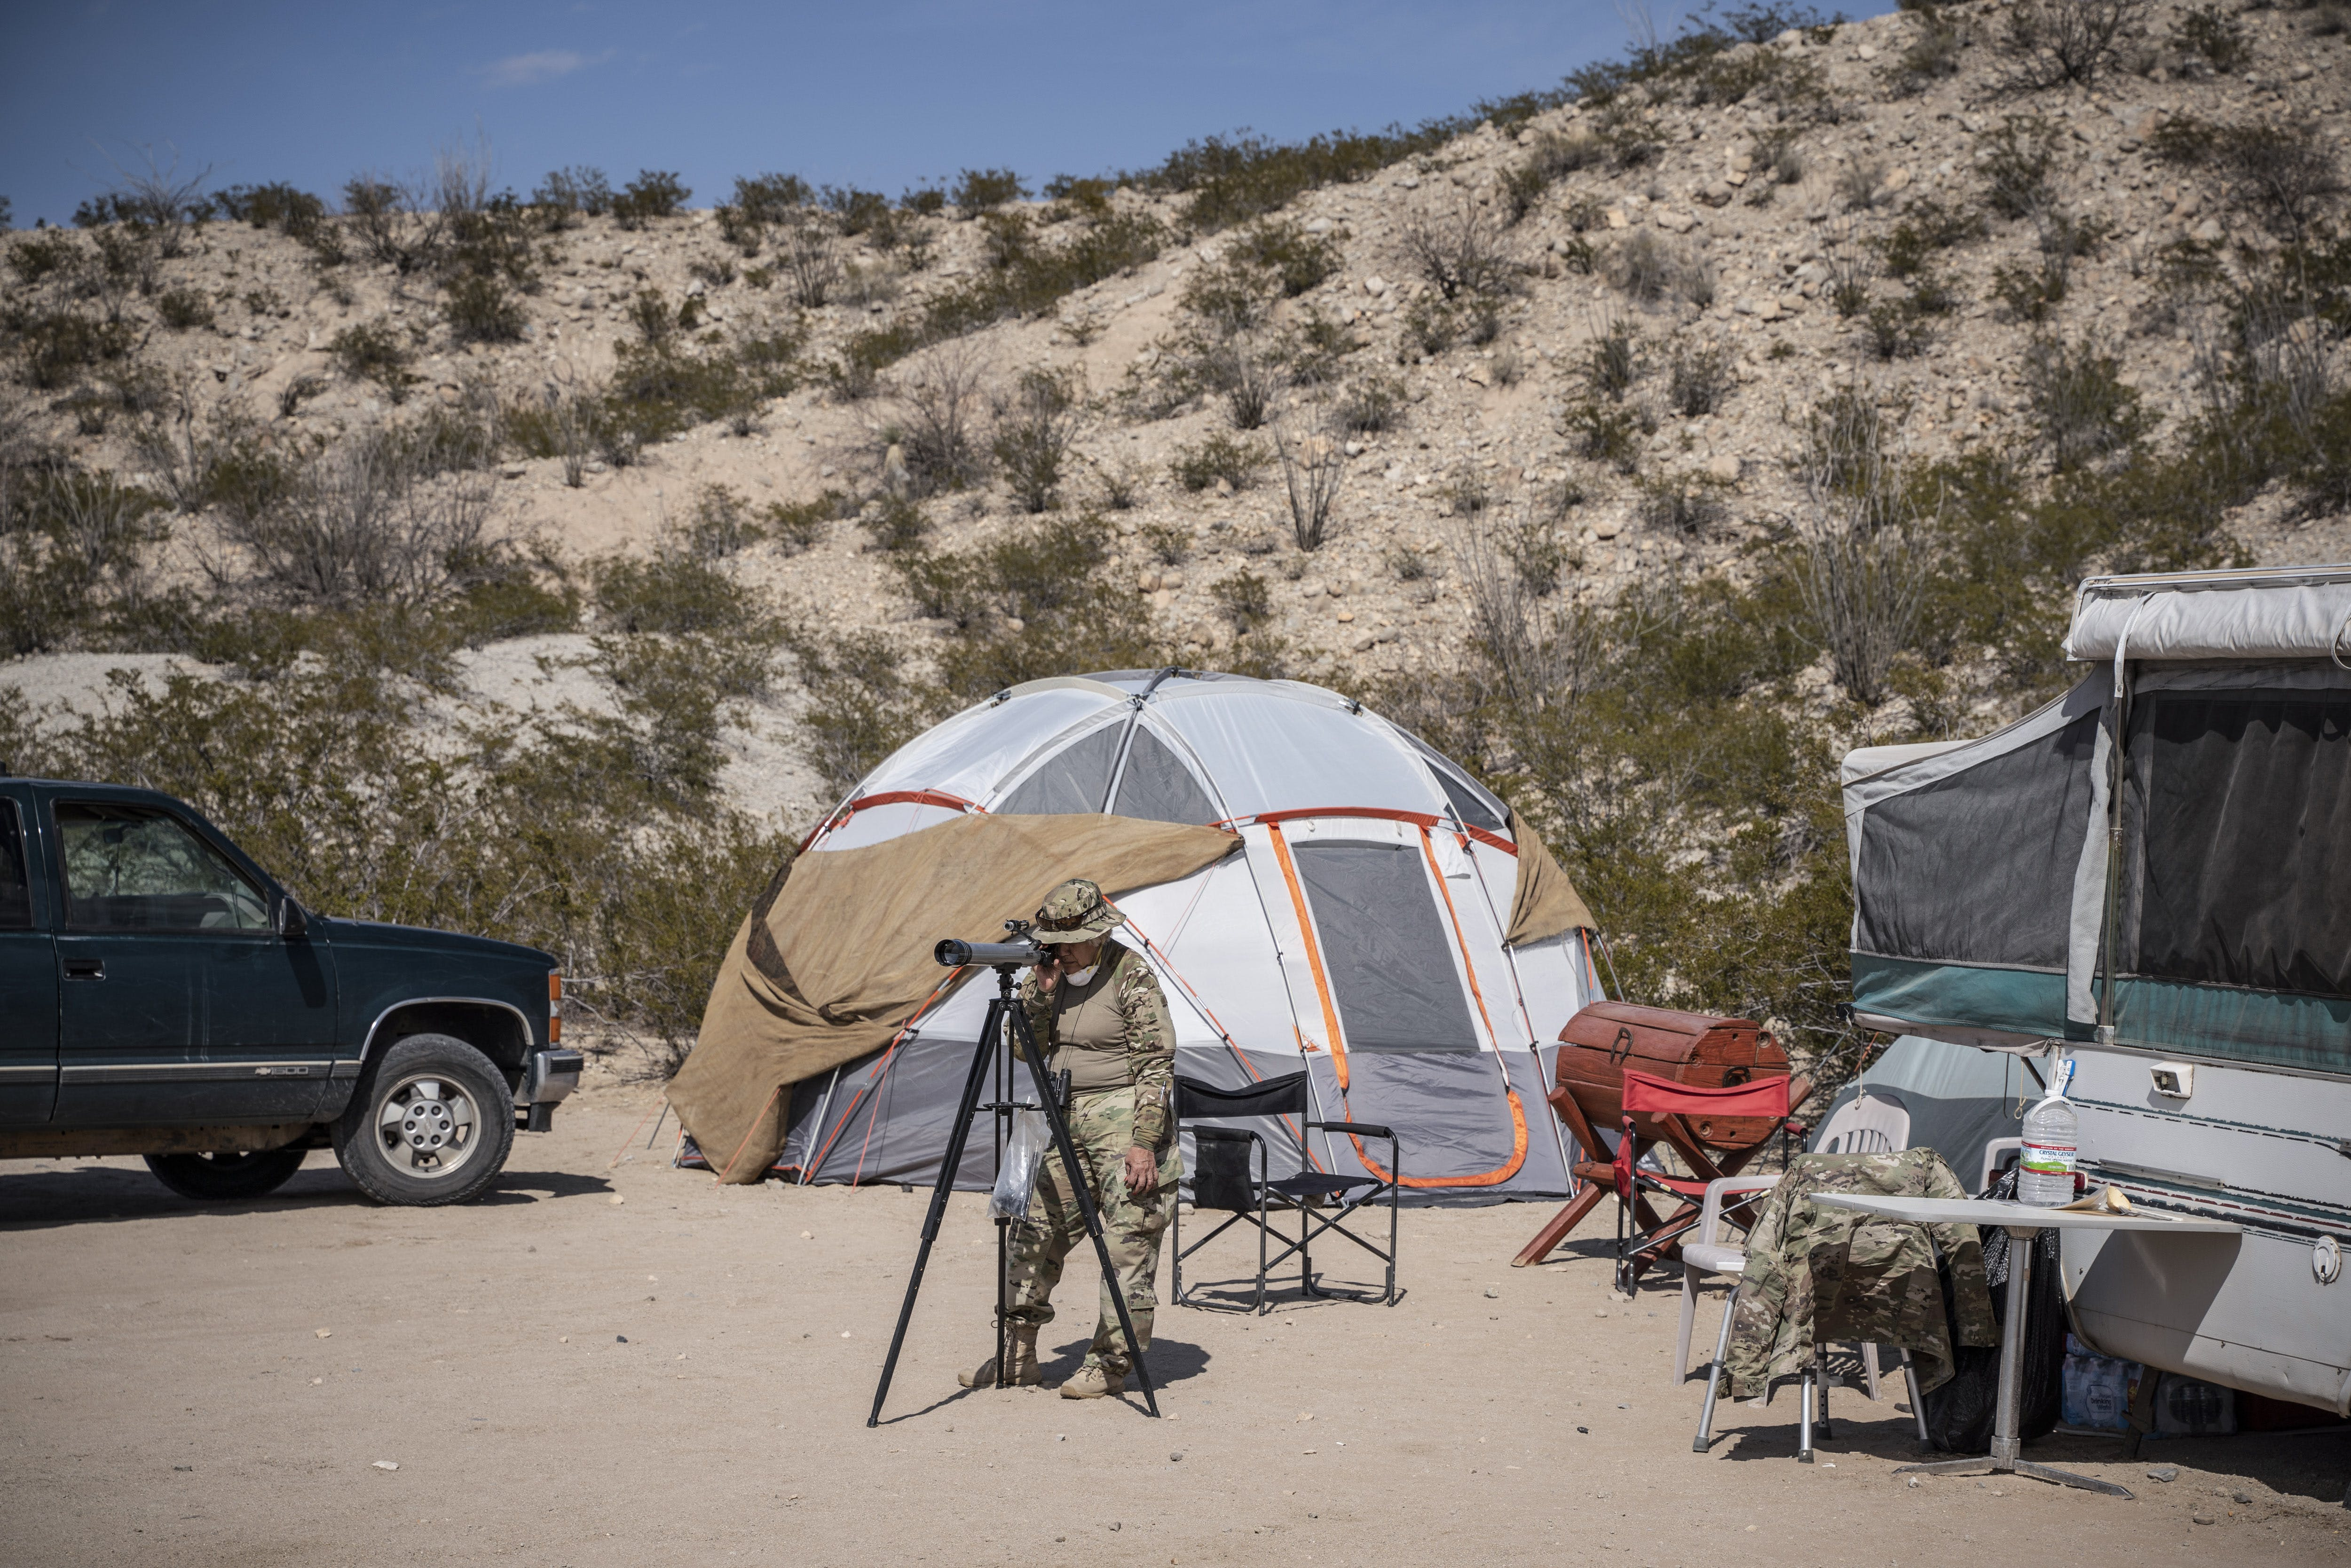 "A member of United Constitutional Patriots New Mexico Border Ops militia team monitors the US-Mexico border in Anapra, New Mexico on March 20, 2019. - The militia members say they will patrol the US-Mexico border near Mt. Christo Rey, ""Until the wall is built."" In recent months, thousands of Central Americans have arrived in Mexico in several caravans in the hope of finding a better life in the United States. US President Donald Trump has branded such migrants a threat to national security, demanding billions of dollars from Congress to build a wall on the southern US border."